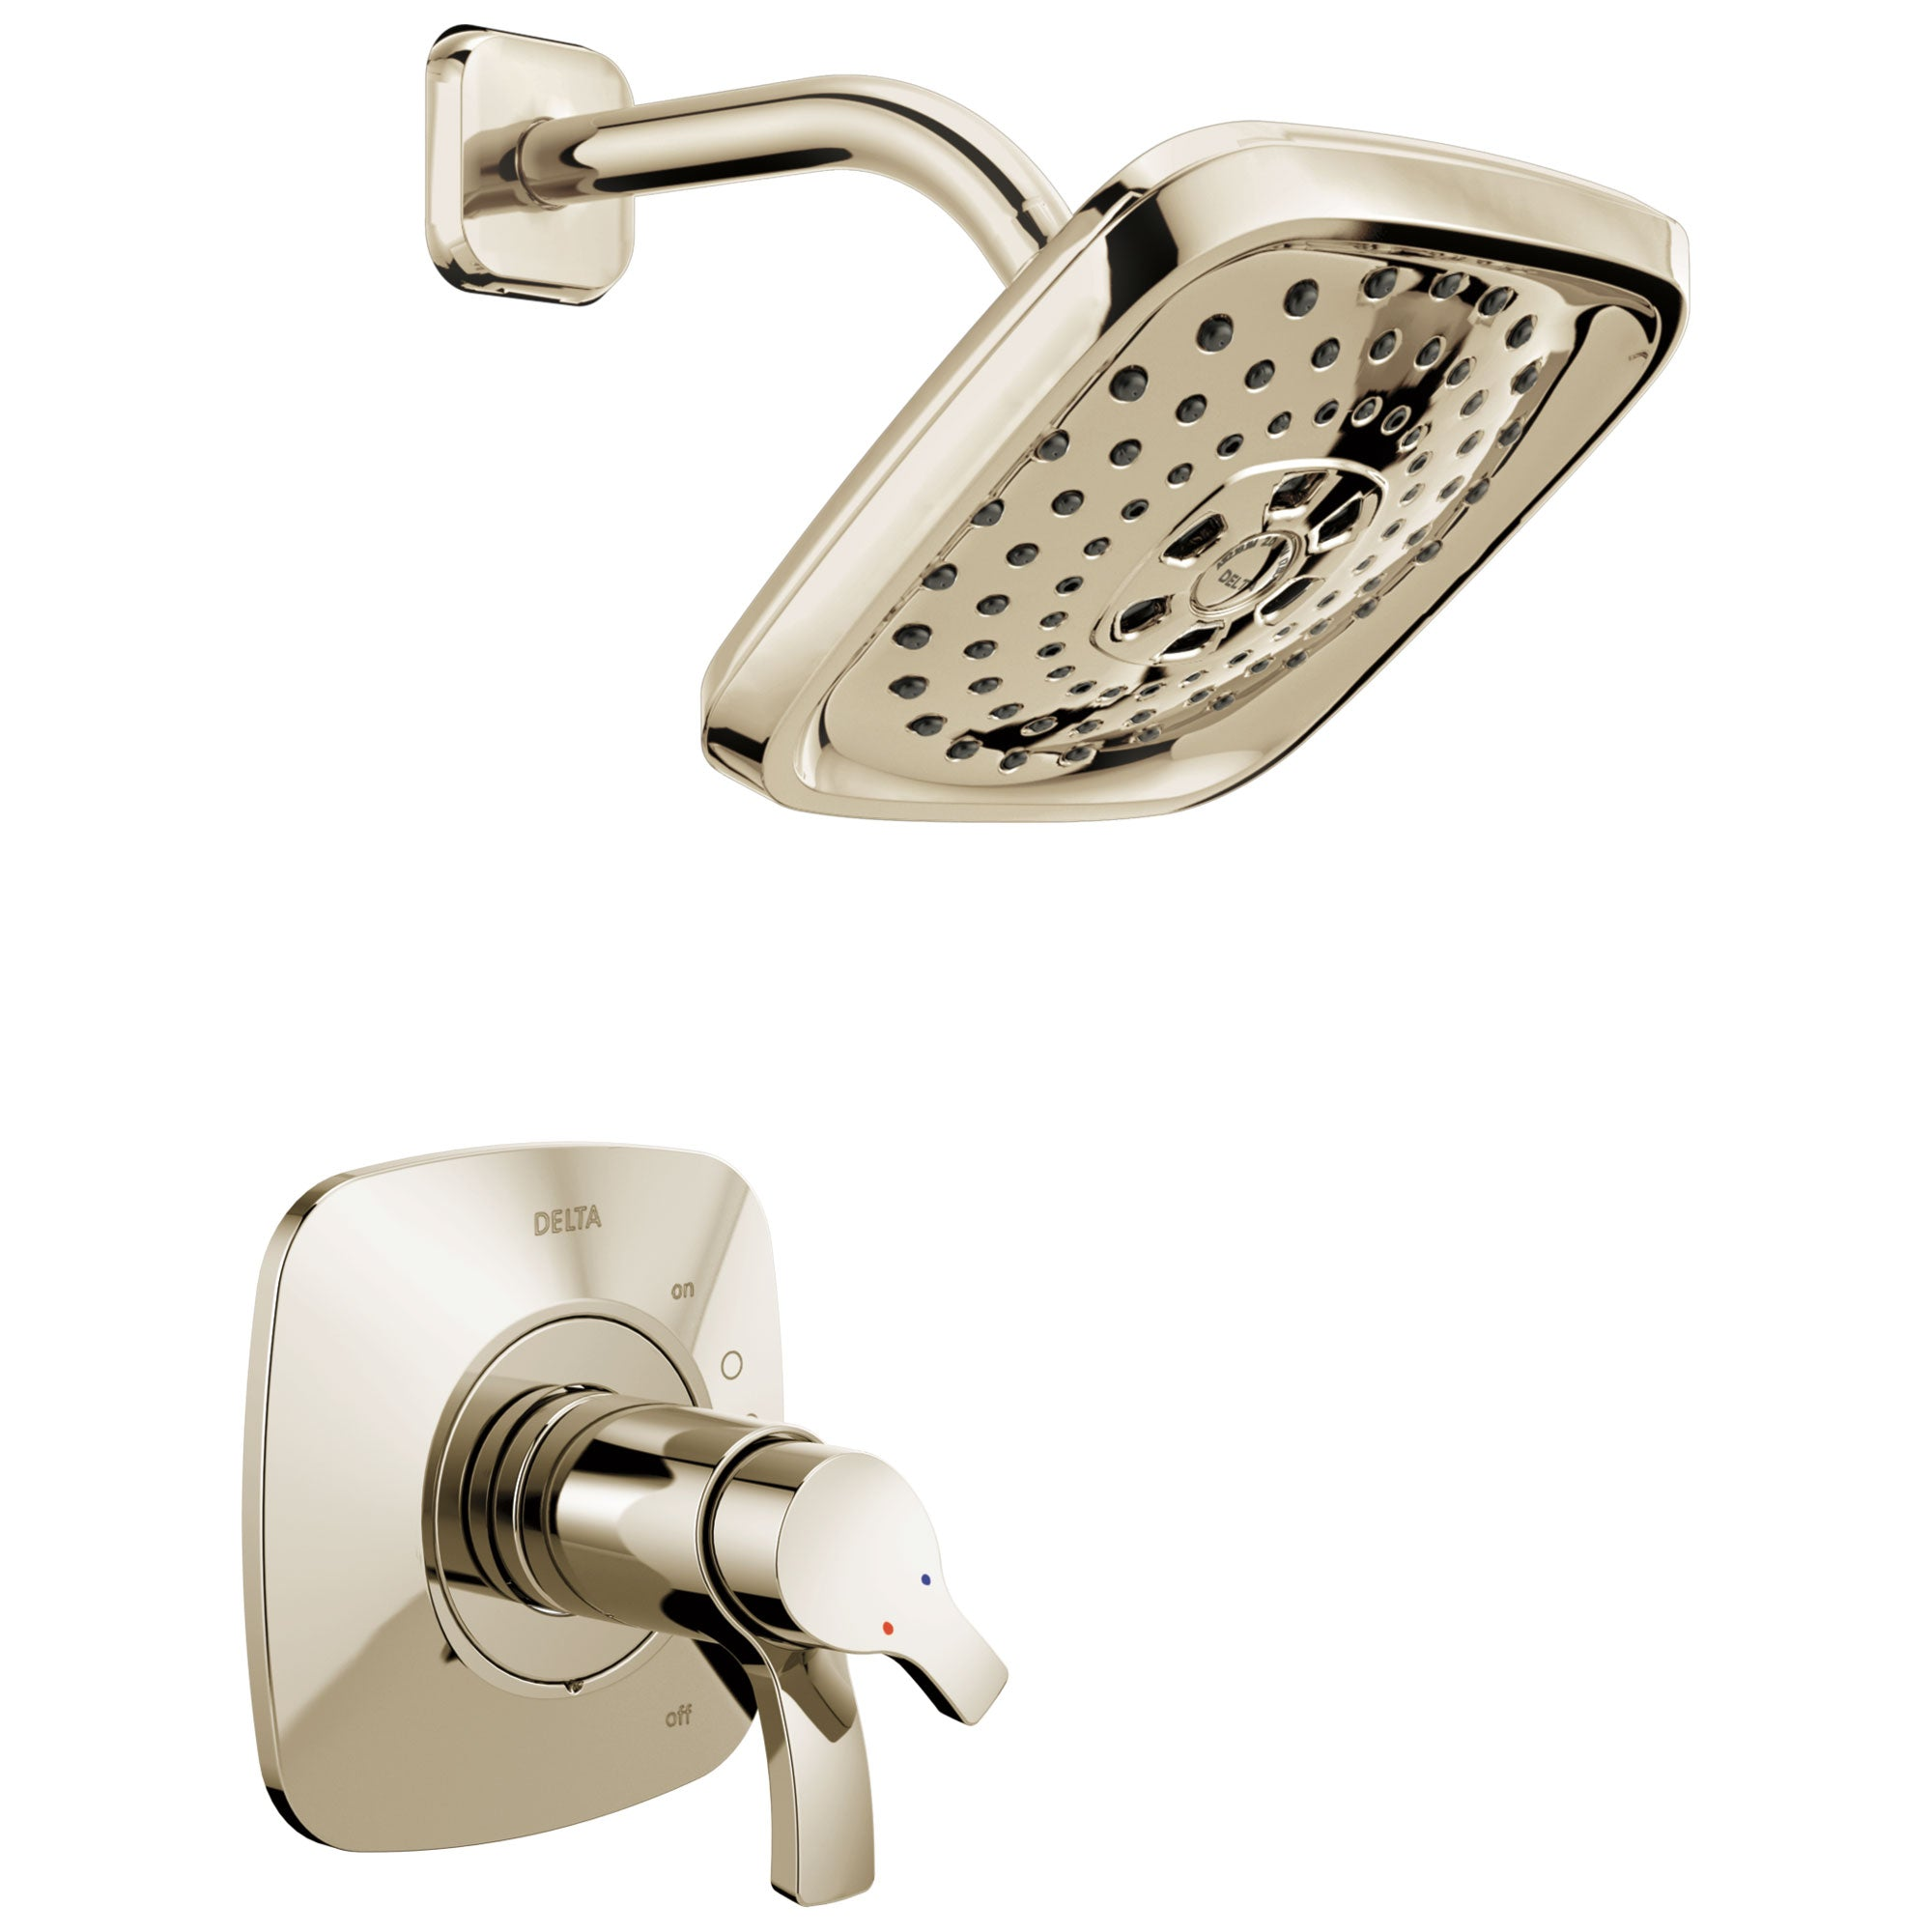 Delta Tesla H2Okinetic 1-Handle Shower Faucet in Polished Nickel Includes Rough-in Valve without Stops D2592V